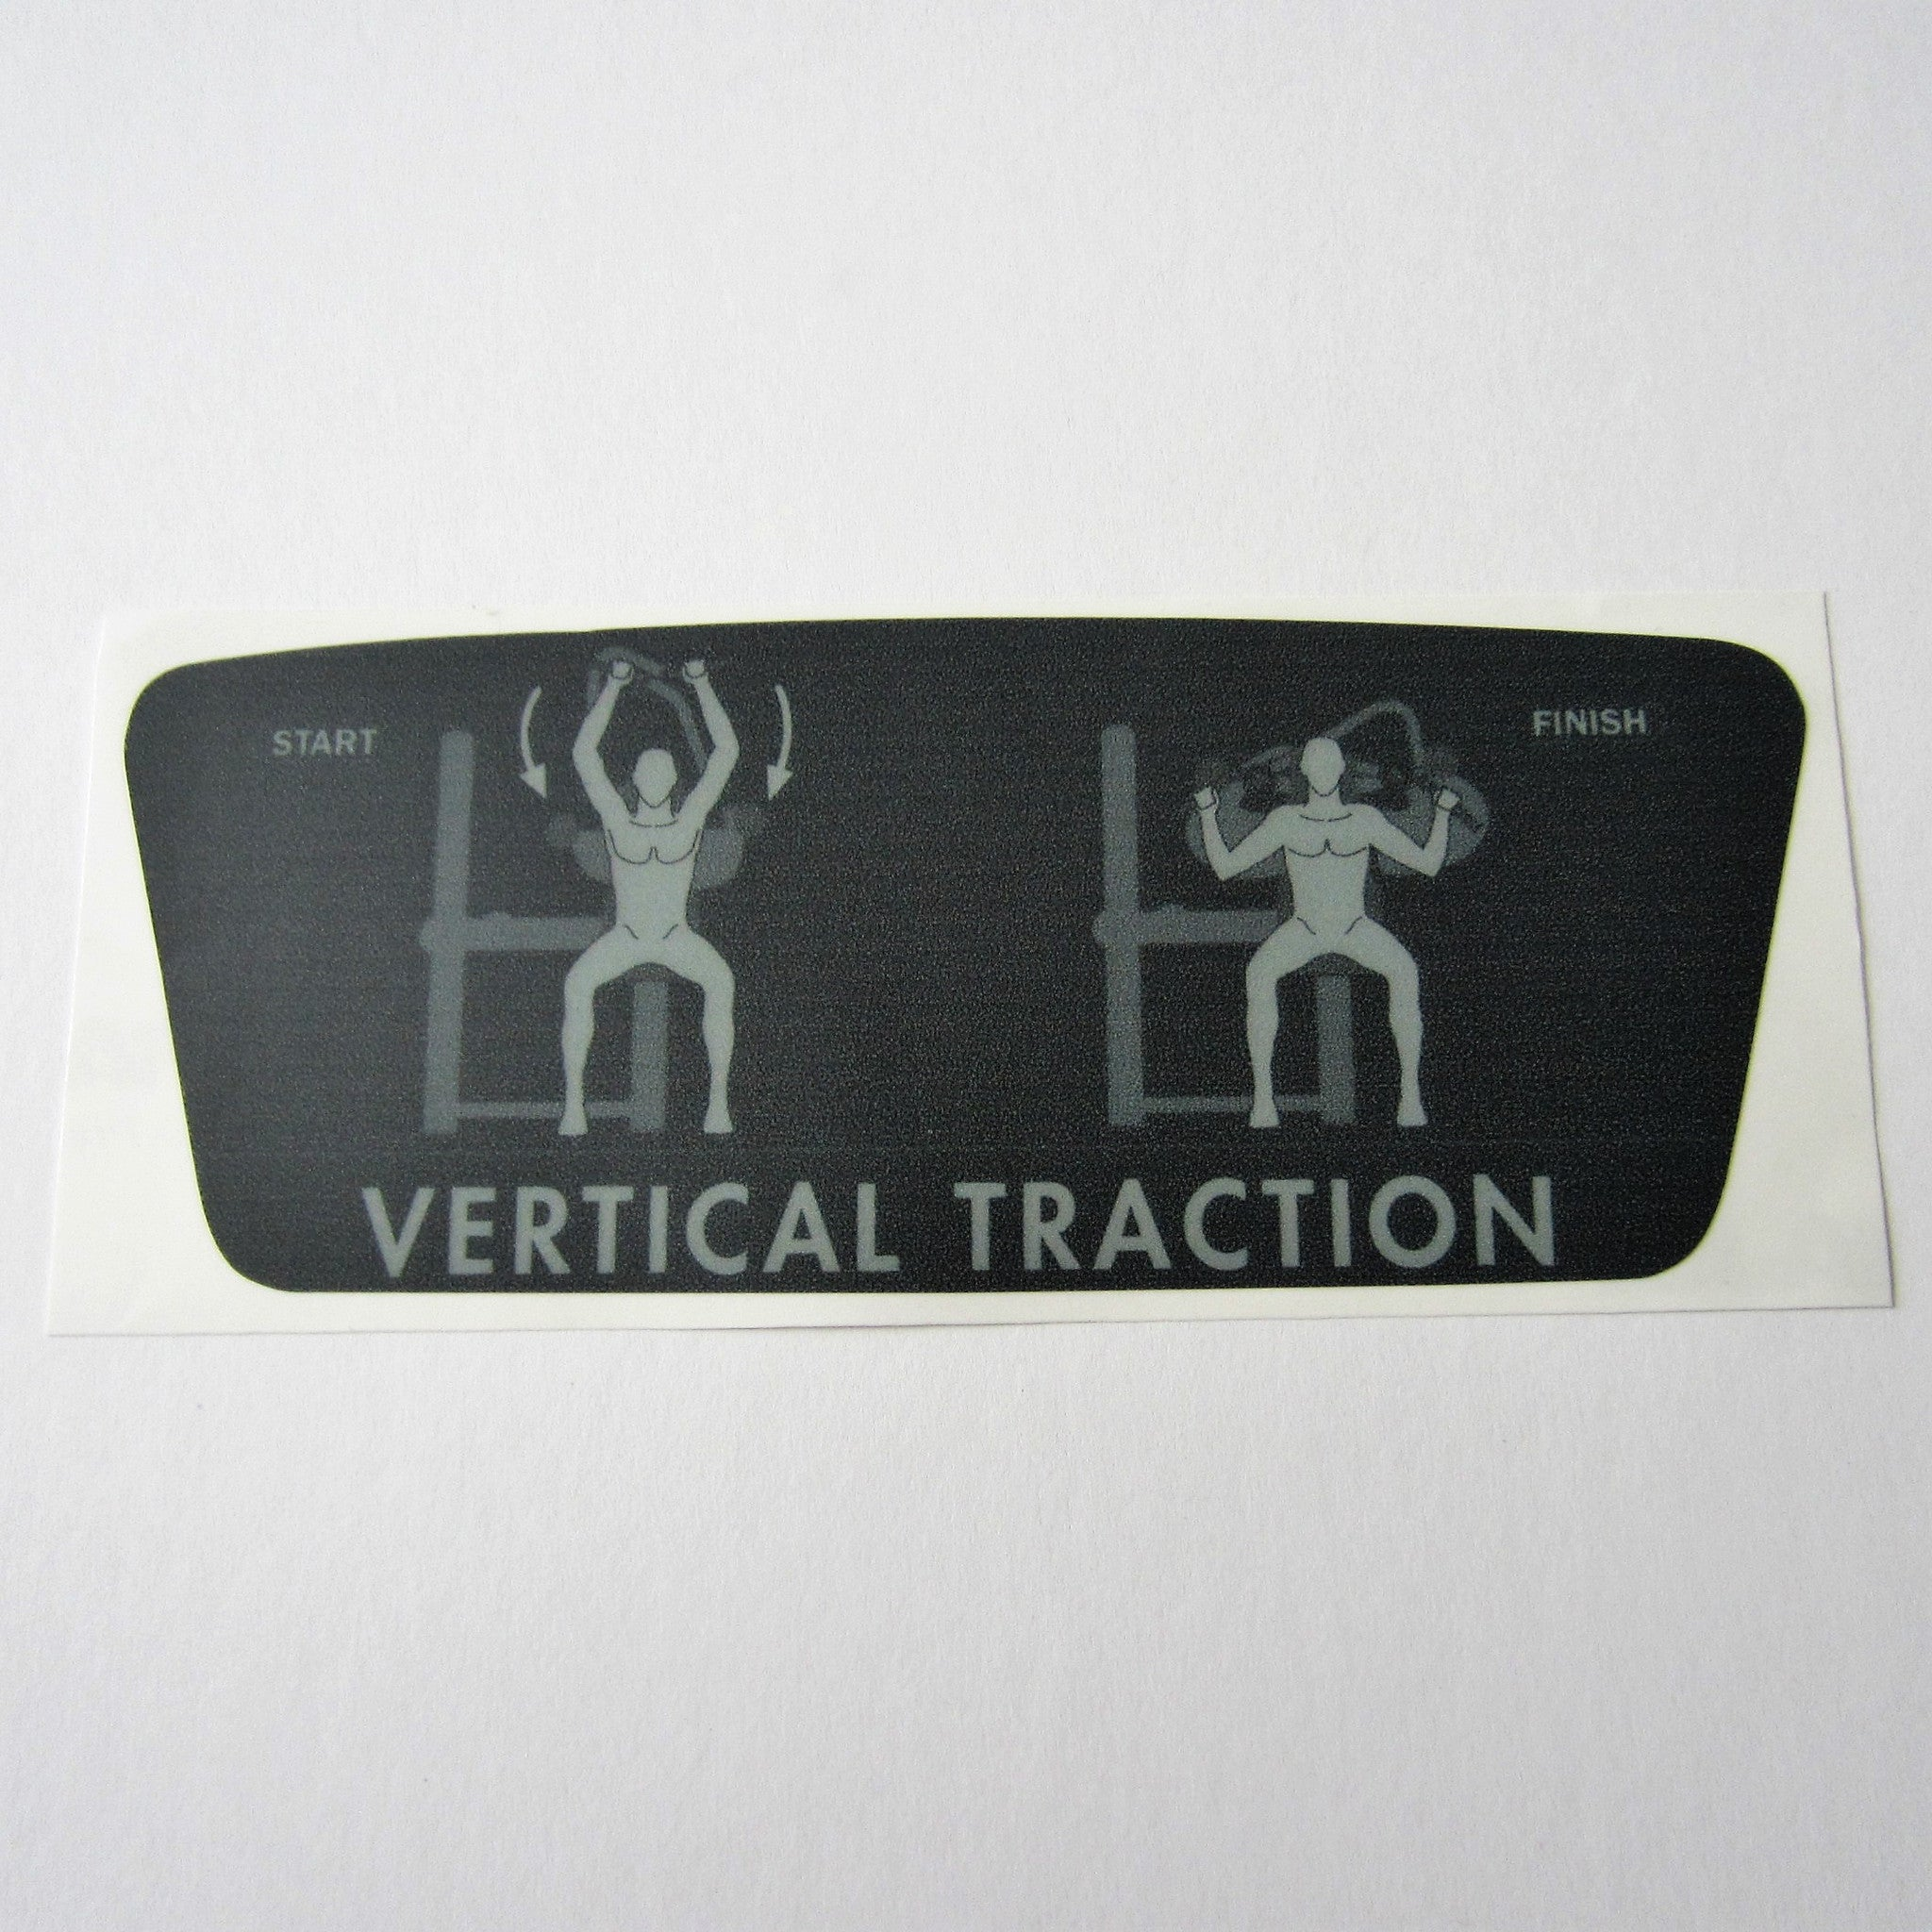 TechnoGym Vertical Traction